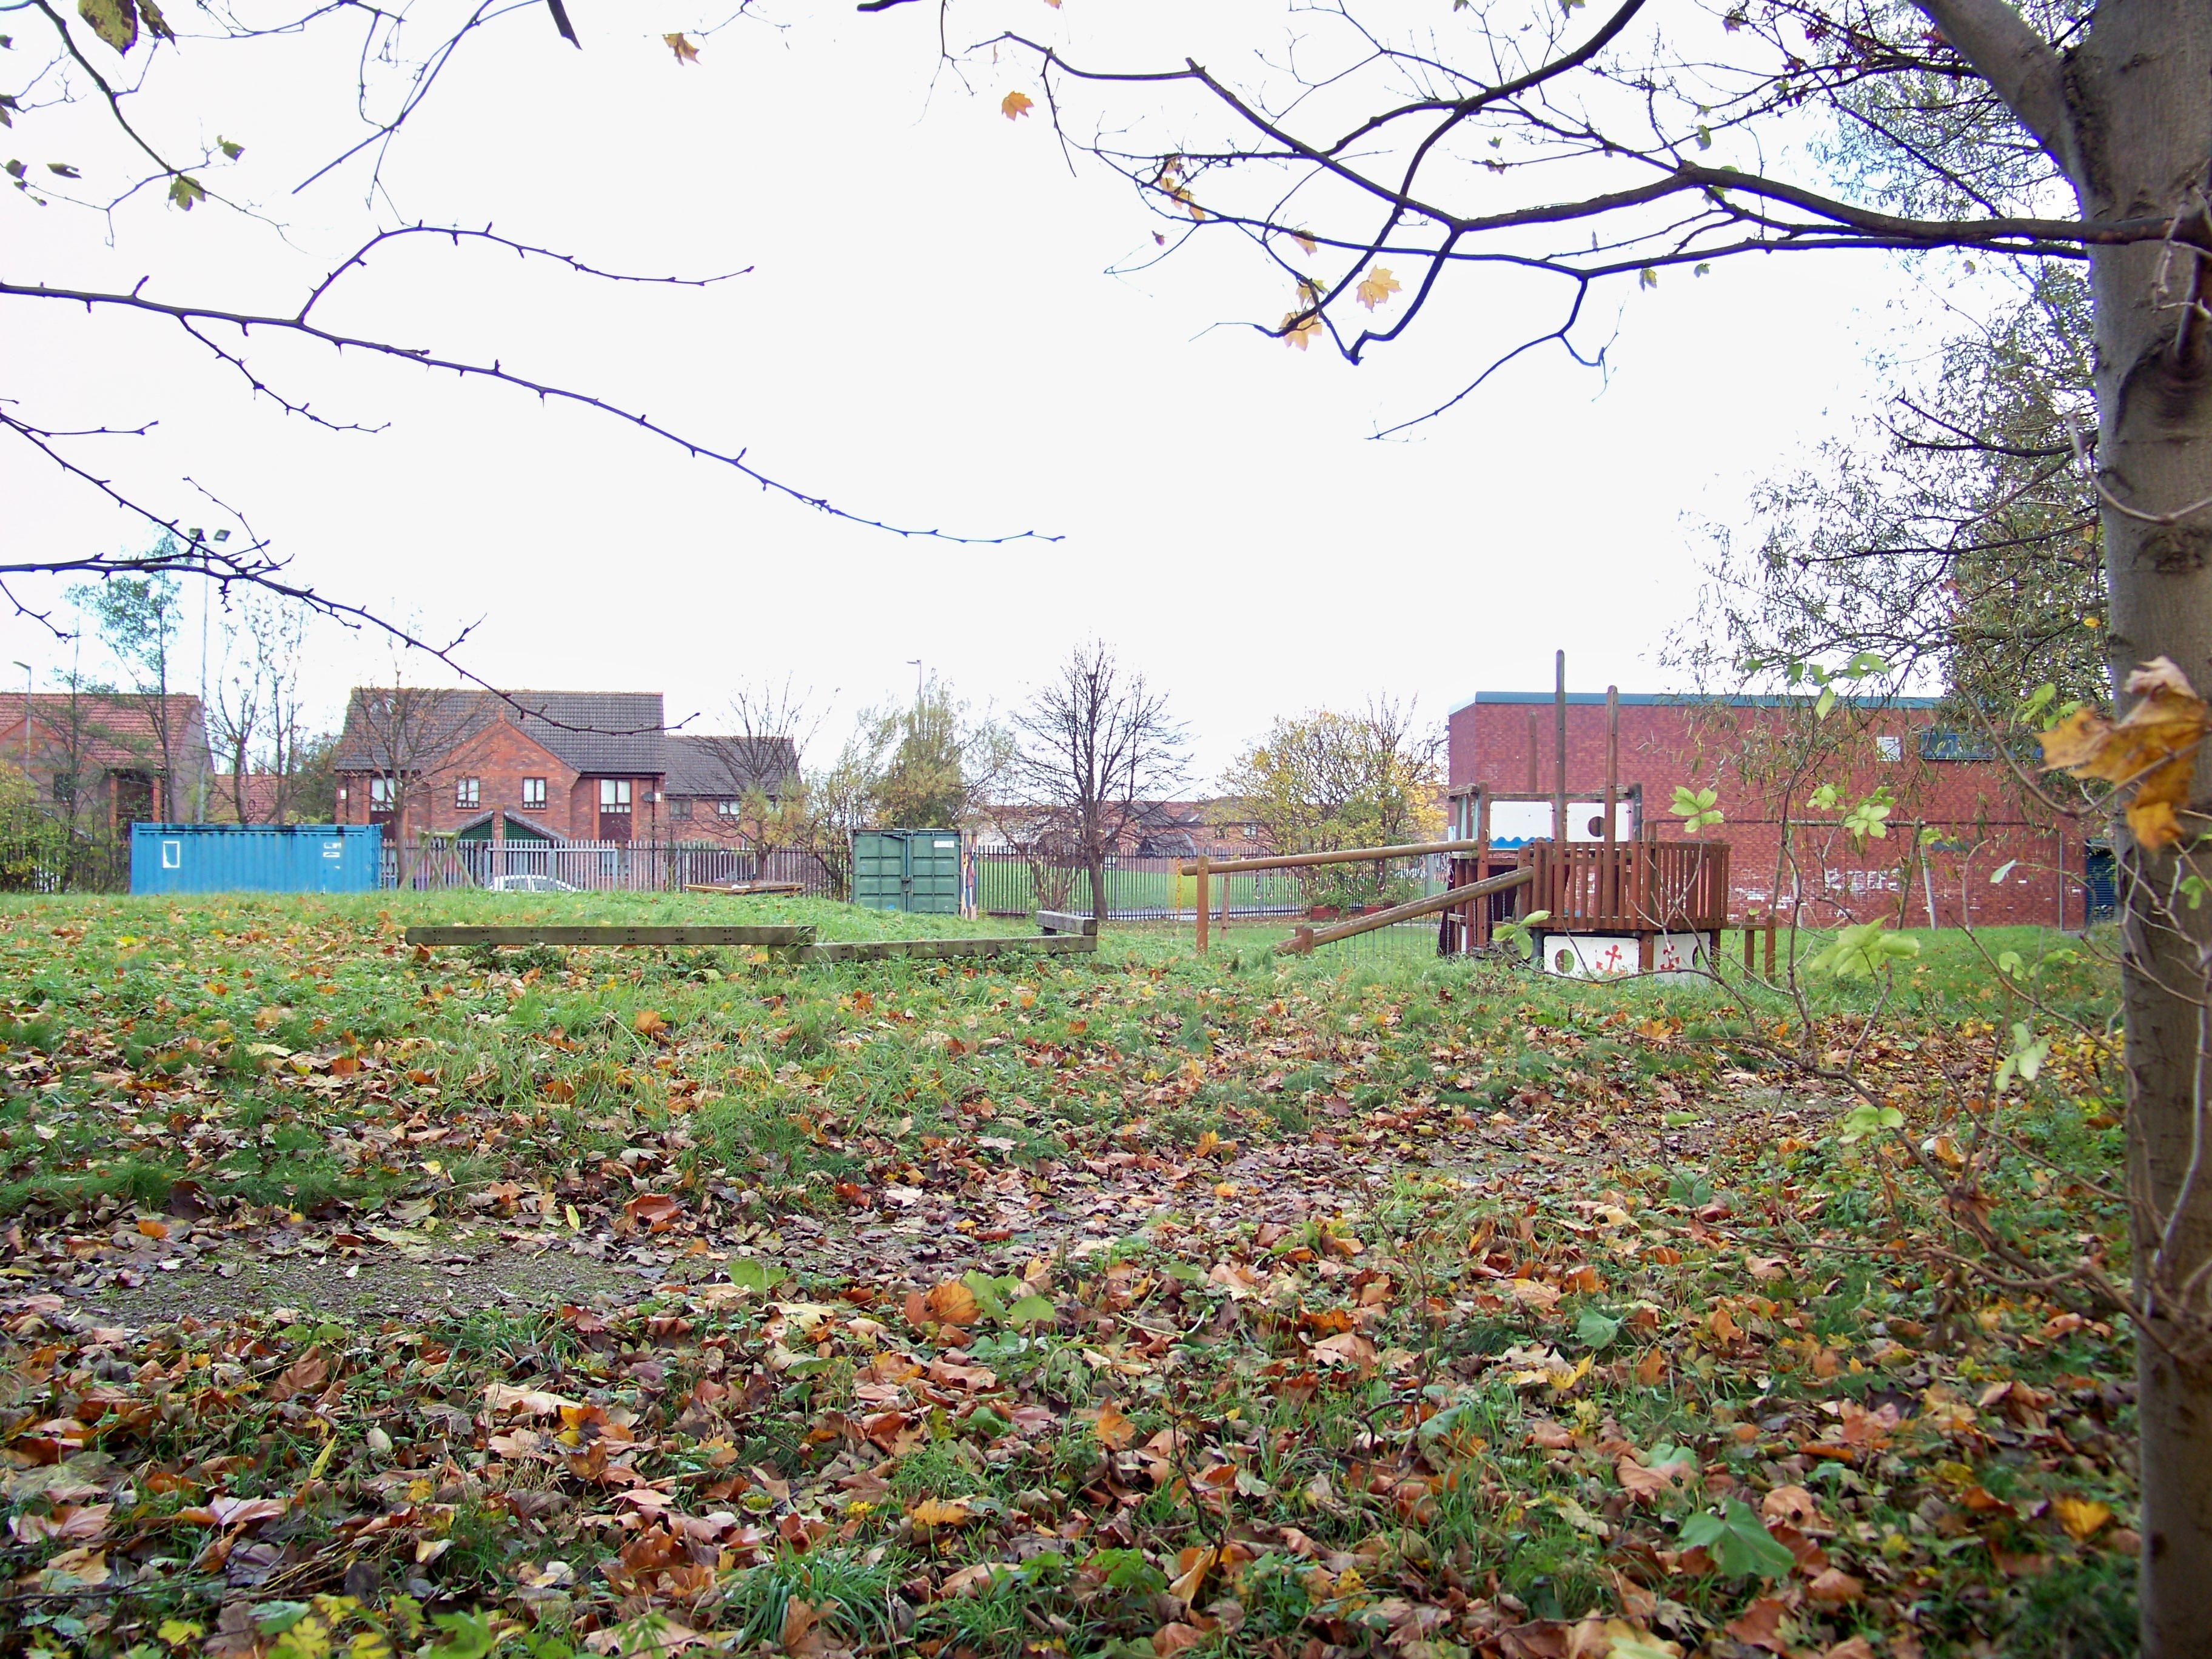 Belle Vale Aventure Playground, 1 Stapleford Road, Liverpool, L25 2NP